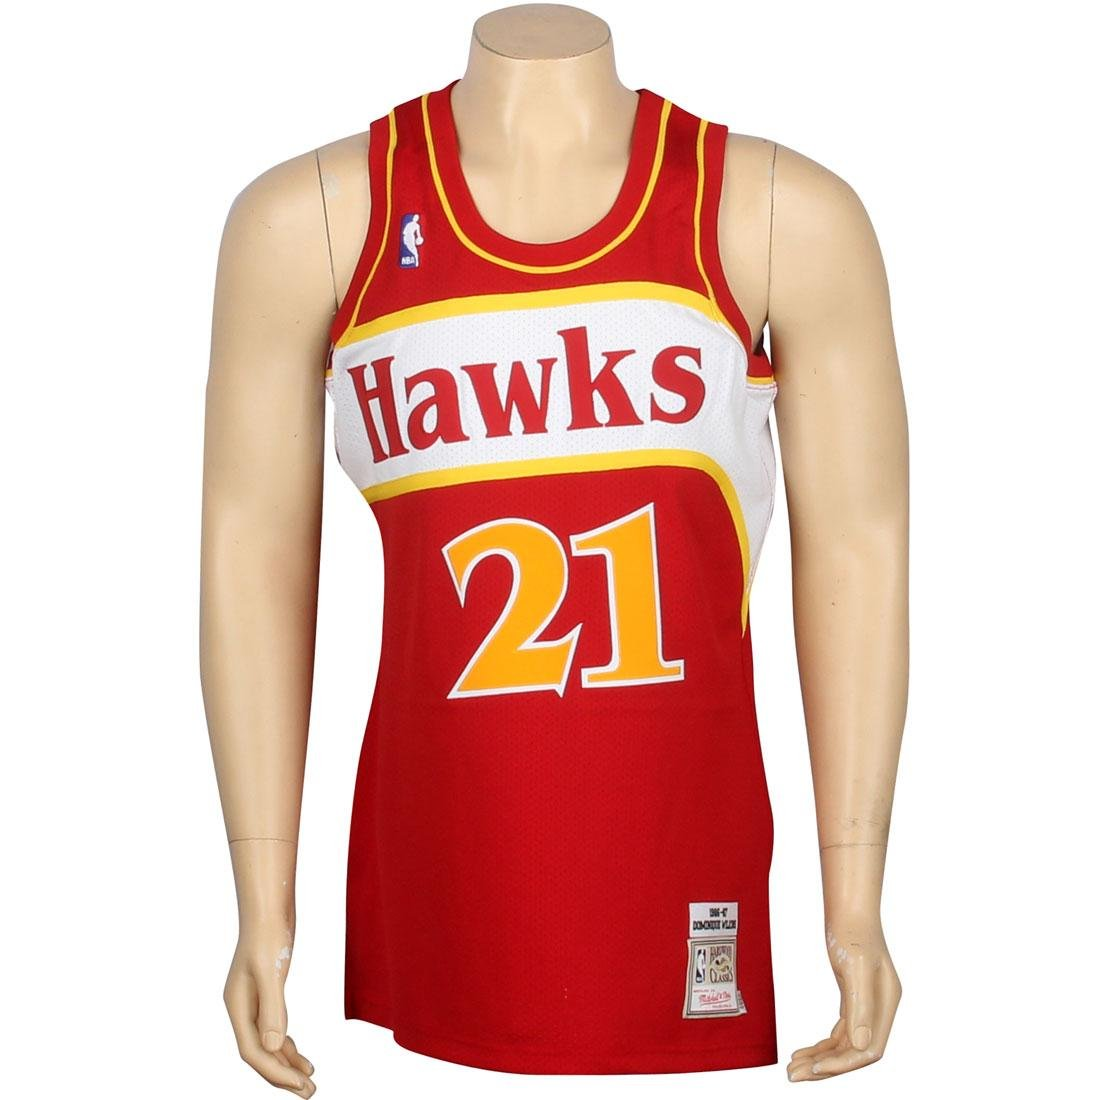 Mitchell & Ness - Gorra de la NBA Atlanta Hawks Dominique Wilkins auténtico Throwback jersey-Red, Rojo: Amazon.es: Deportes y aire libre